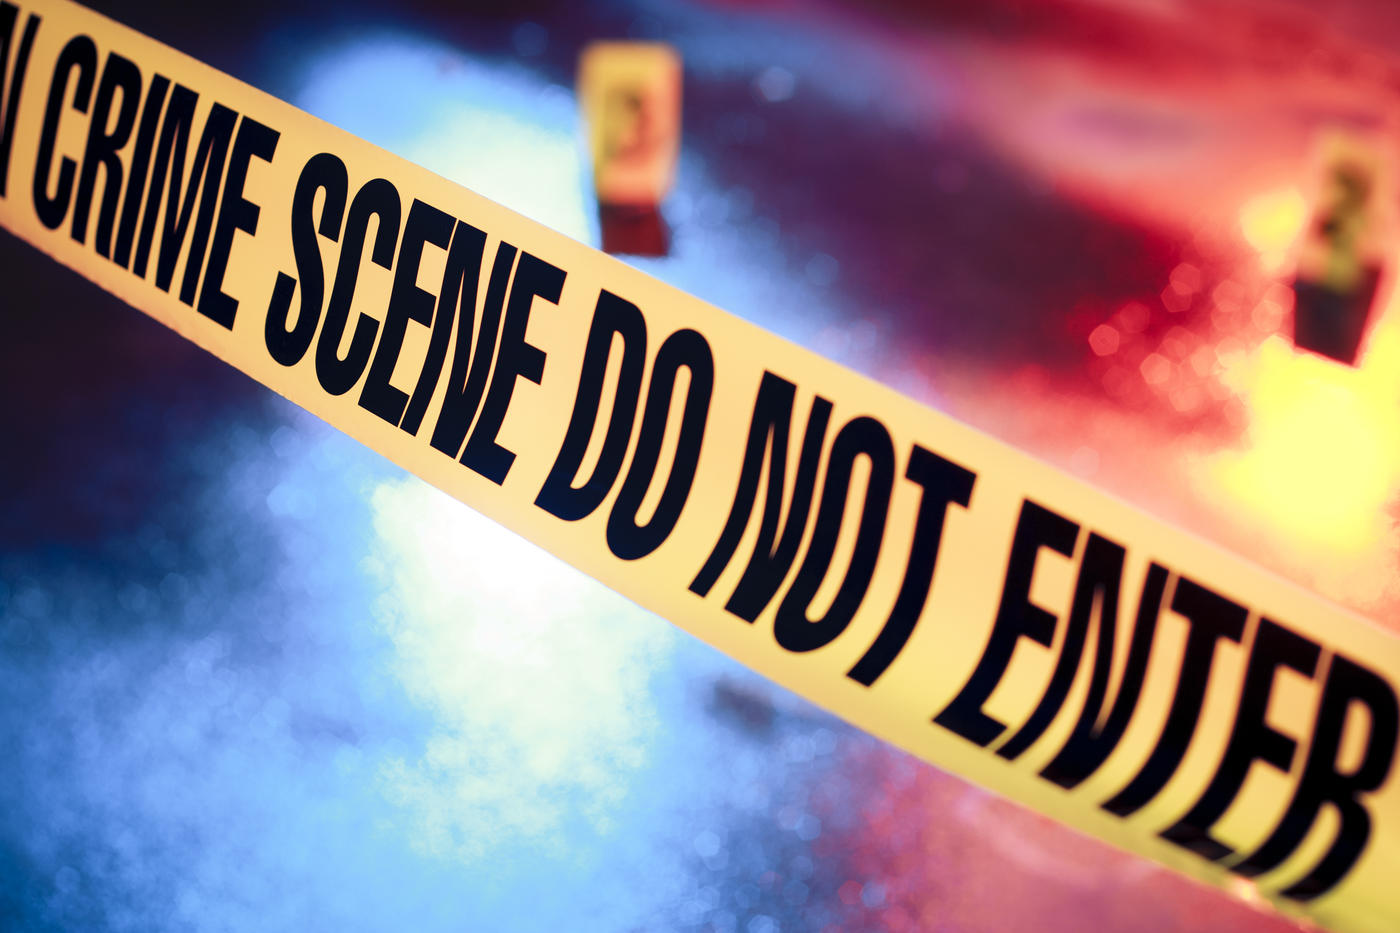 yellow crime scene tape with the words CRIME SCENE DO NOT ENTER